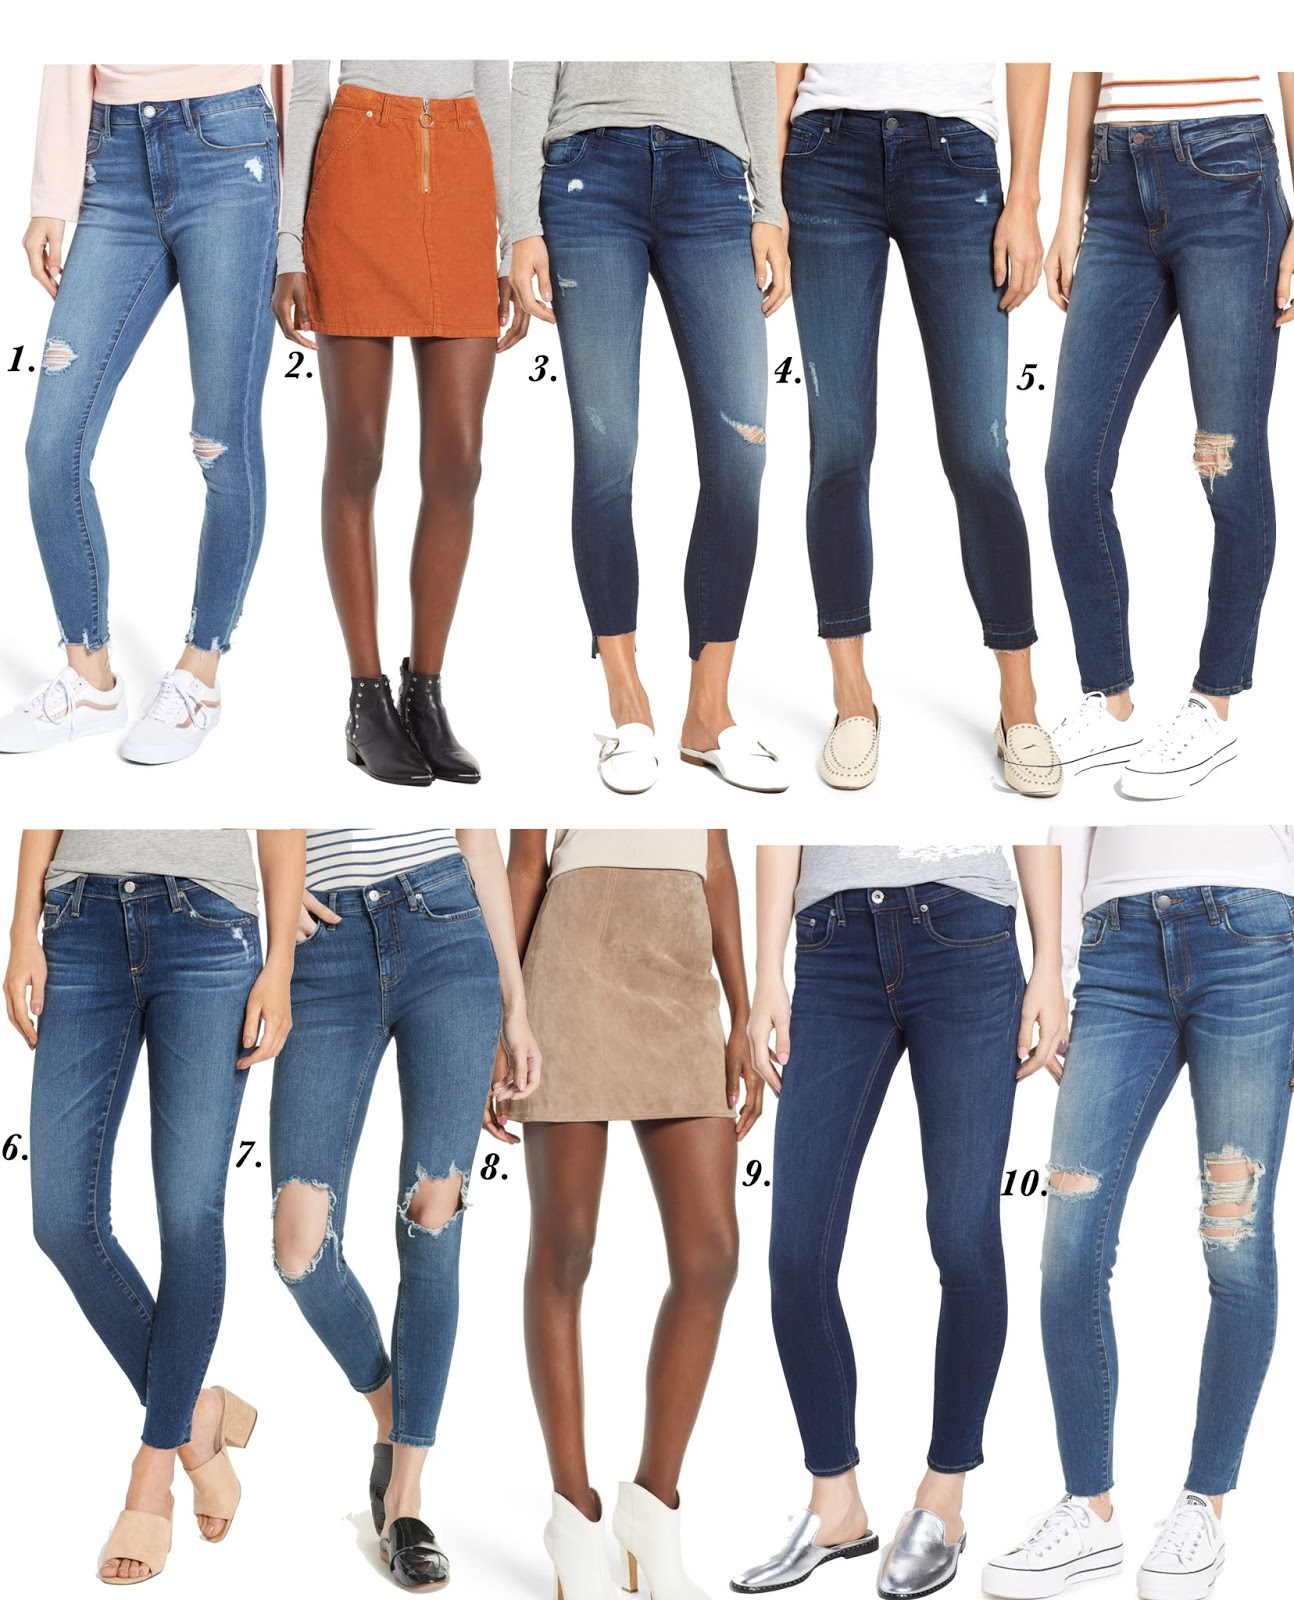 2018 Nordstrom Anniversary Sale: Jeans - Something Delightful Blog